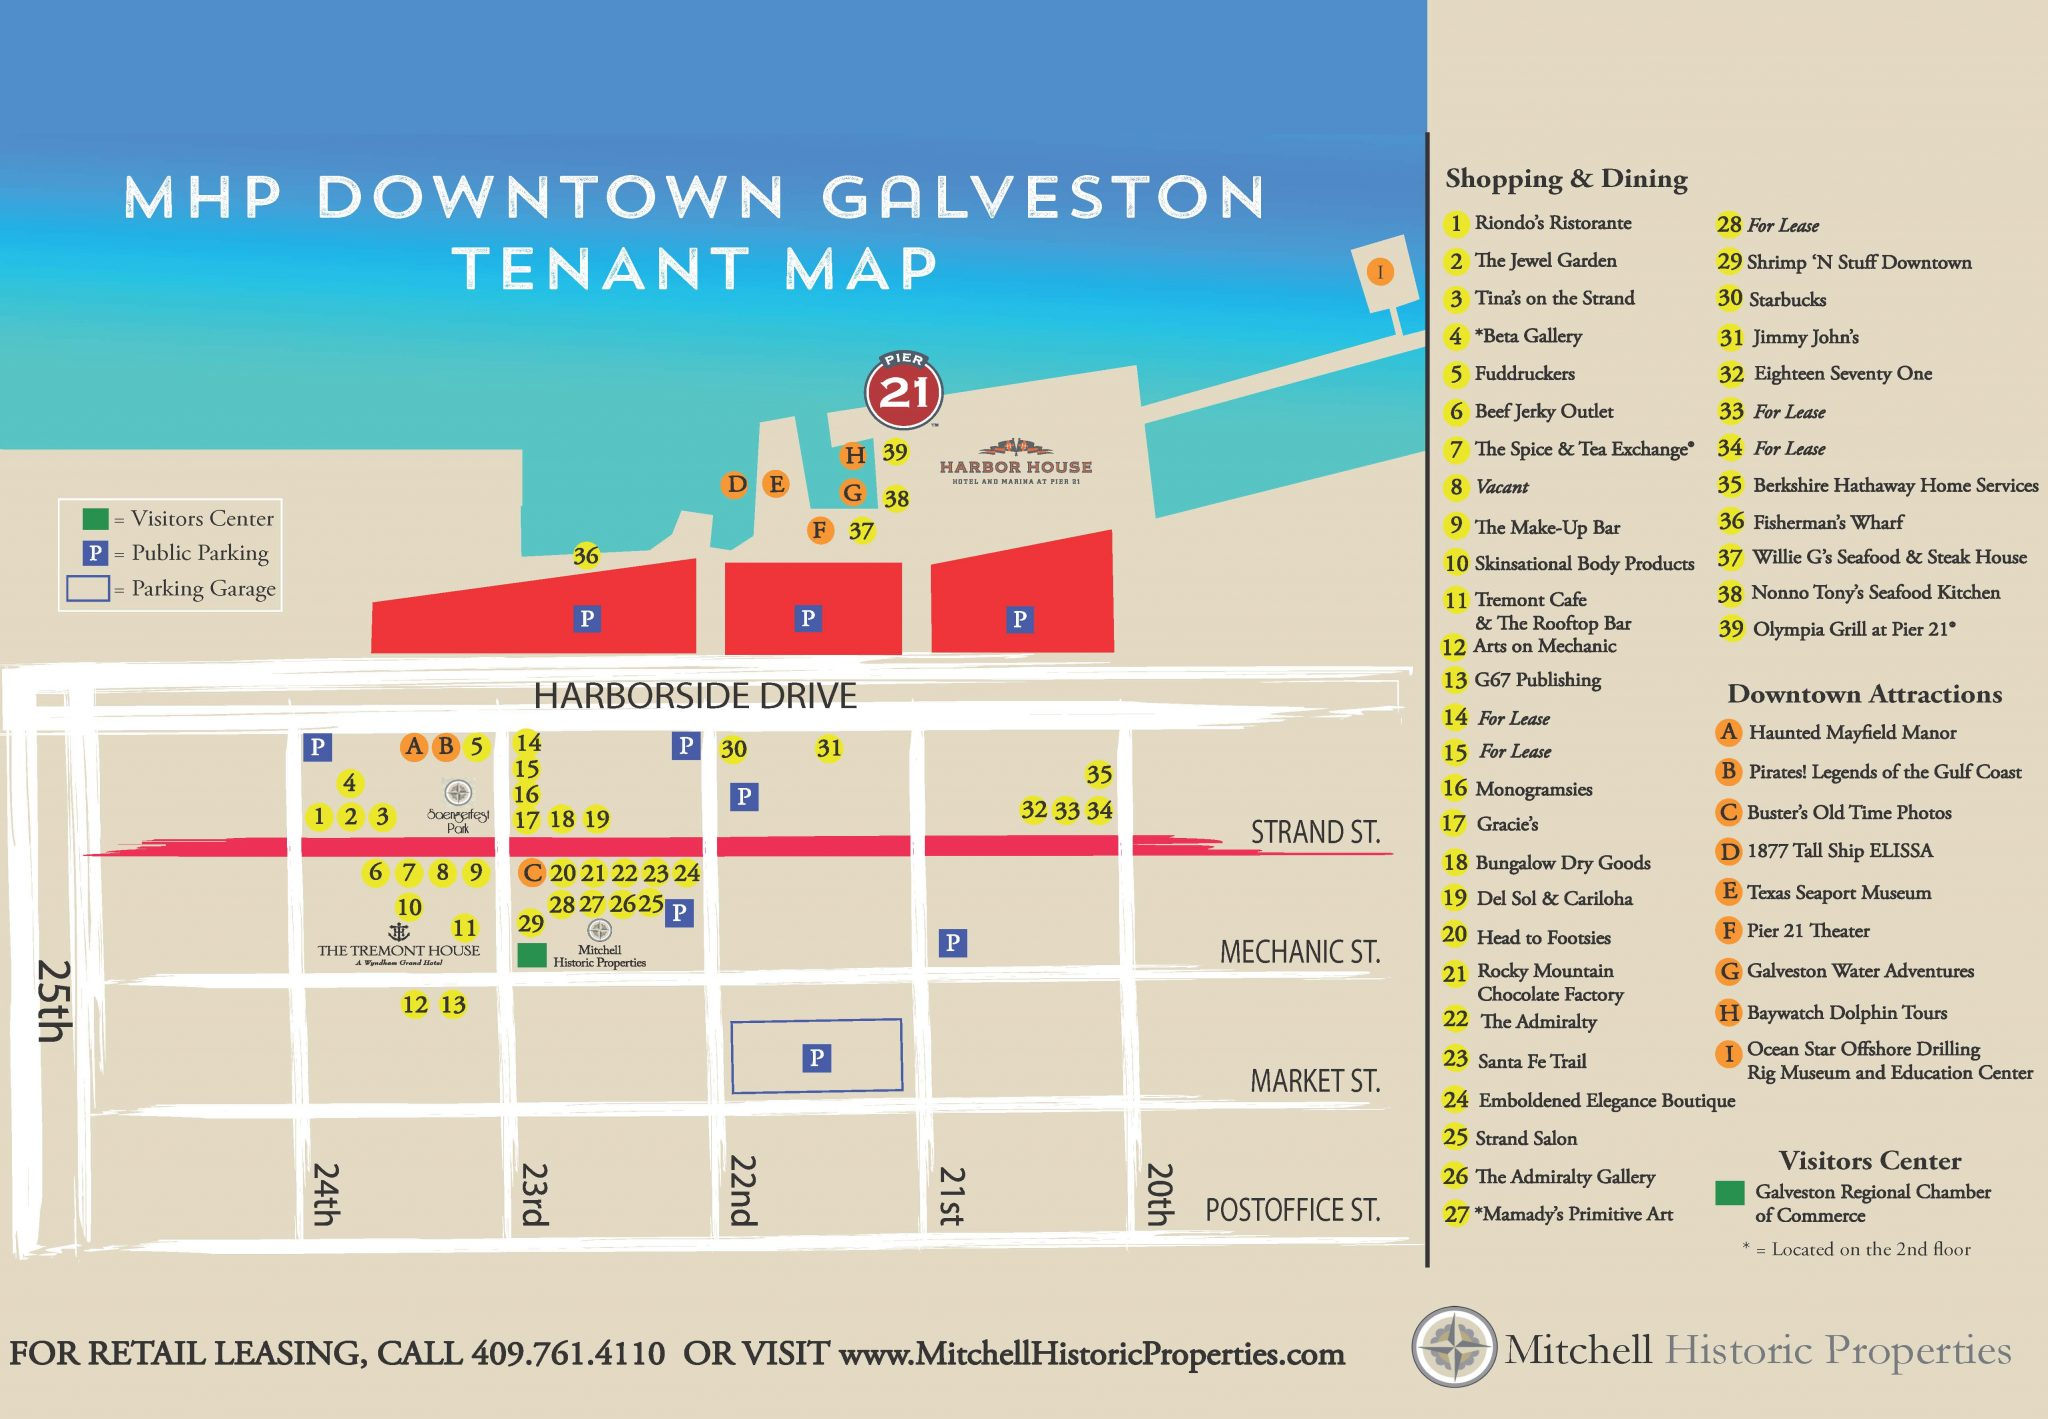 Galveston waterfront shopping and dining map